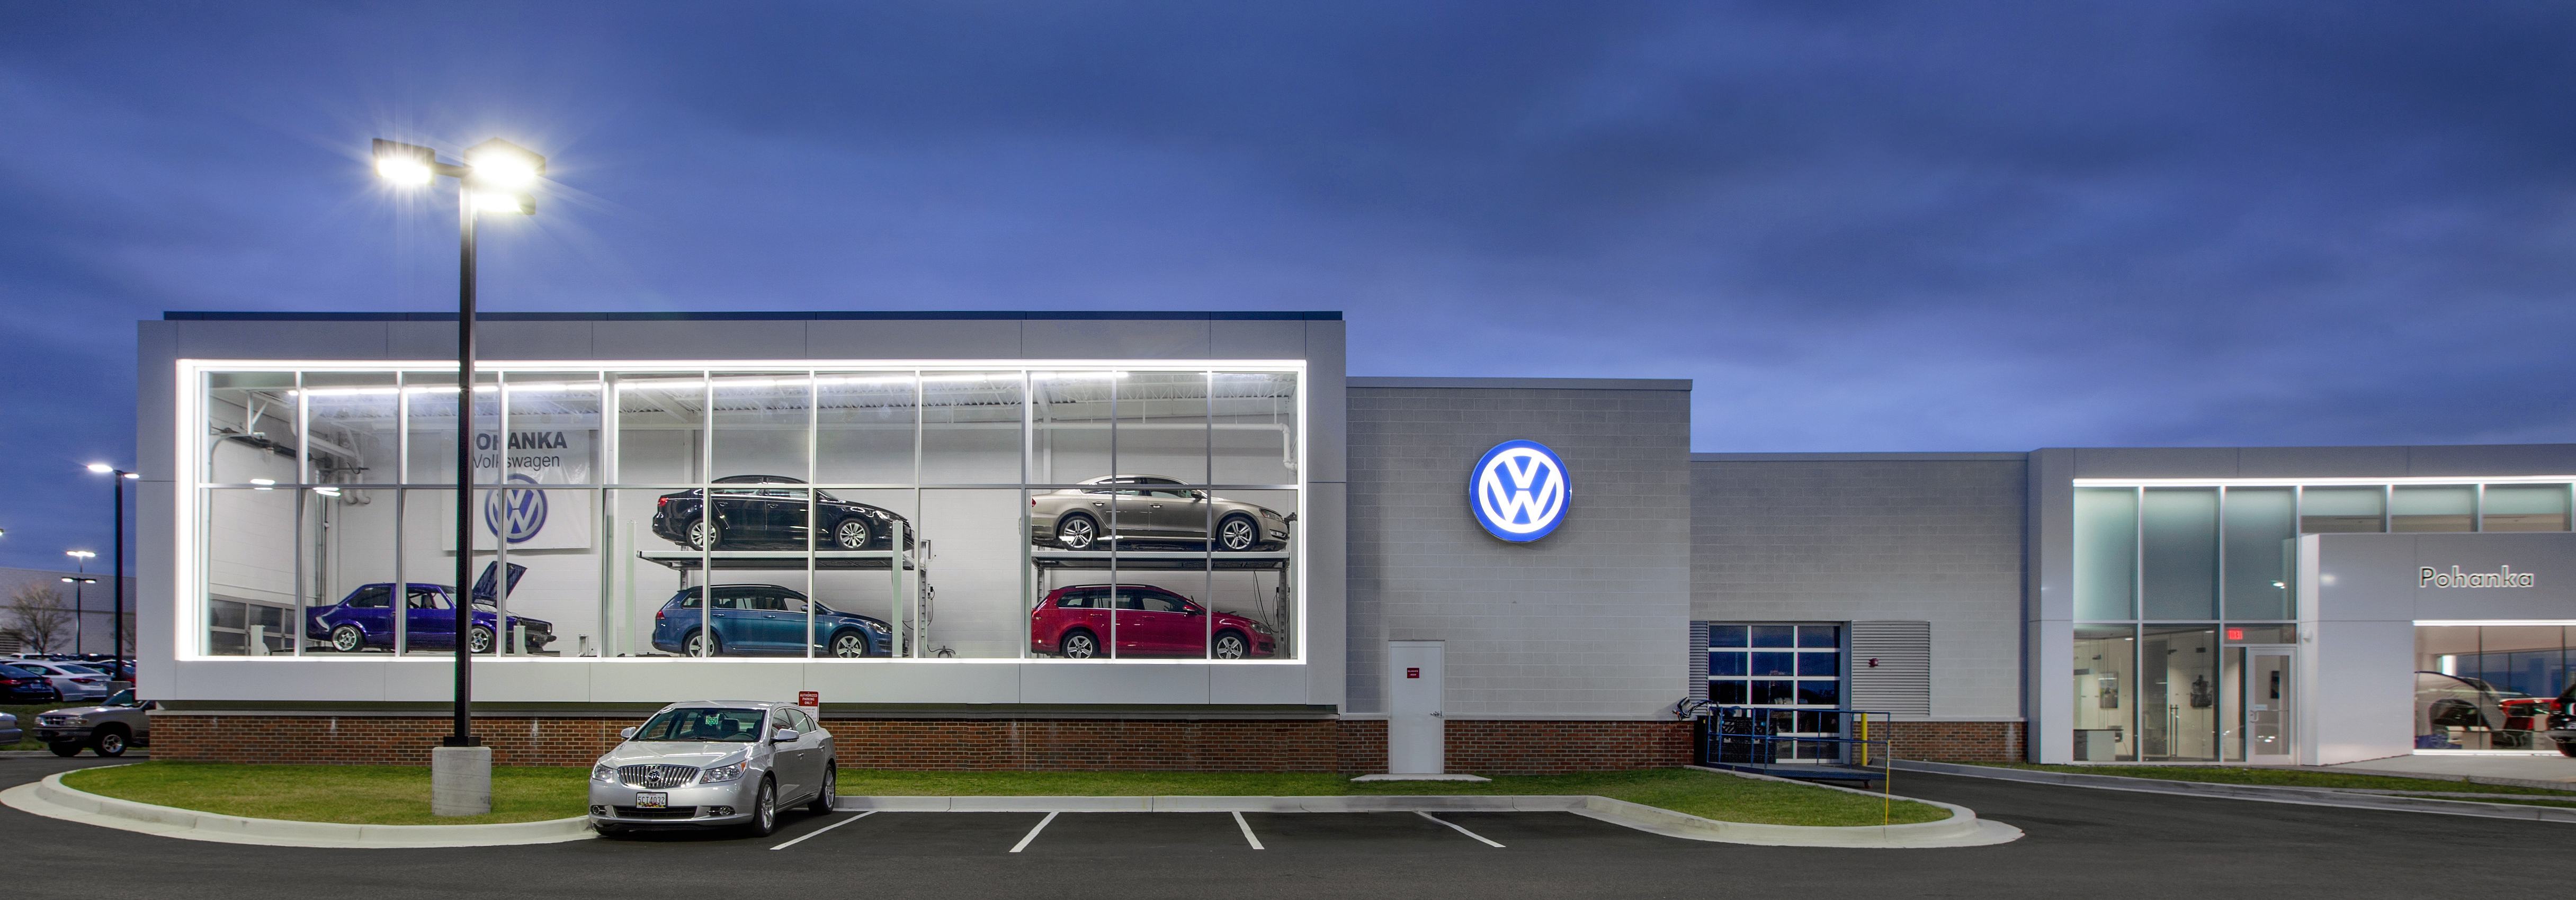 Porsche Of Towson >> POHANKA VW RITCHIE STATION - Penney Design Group